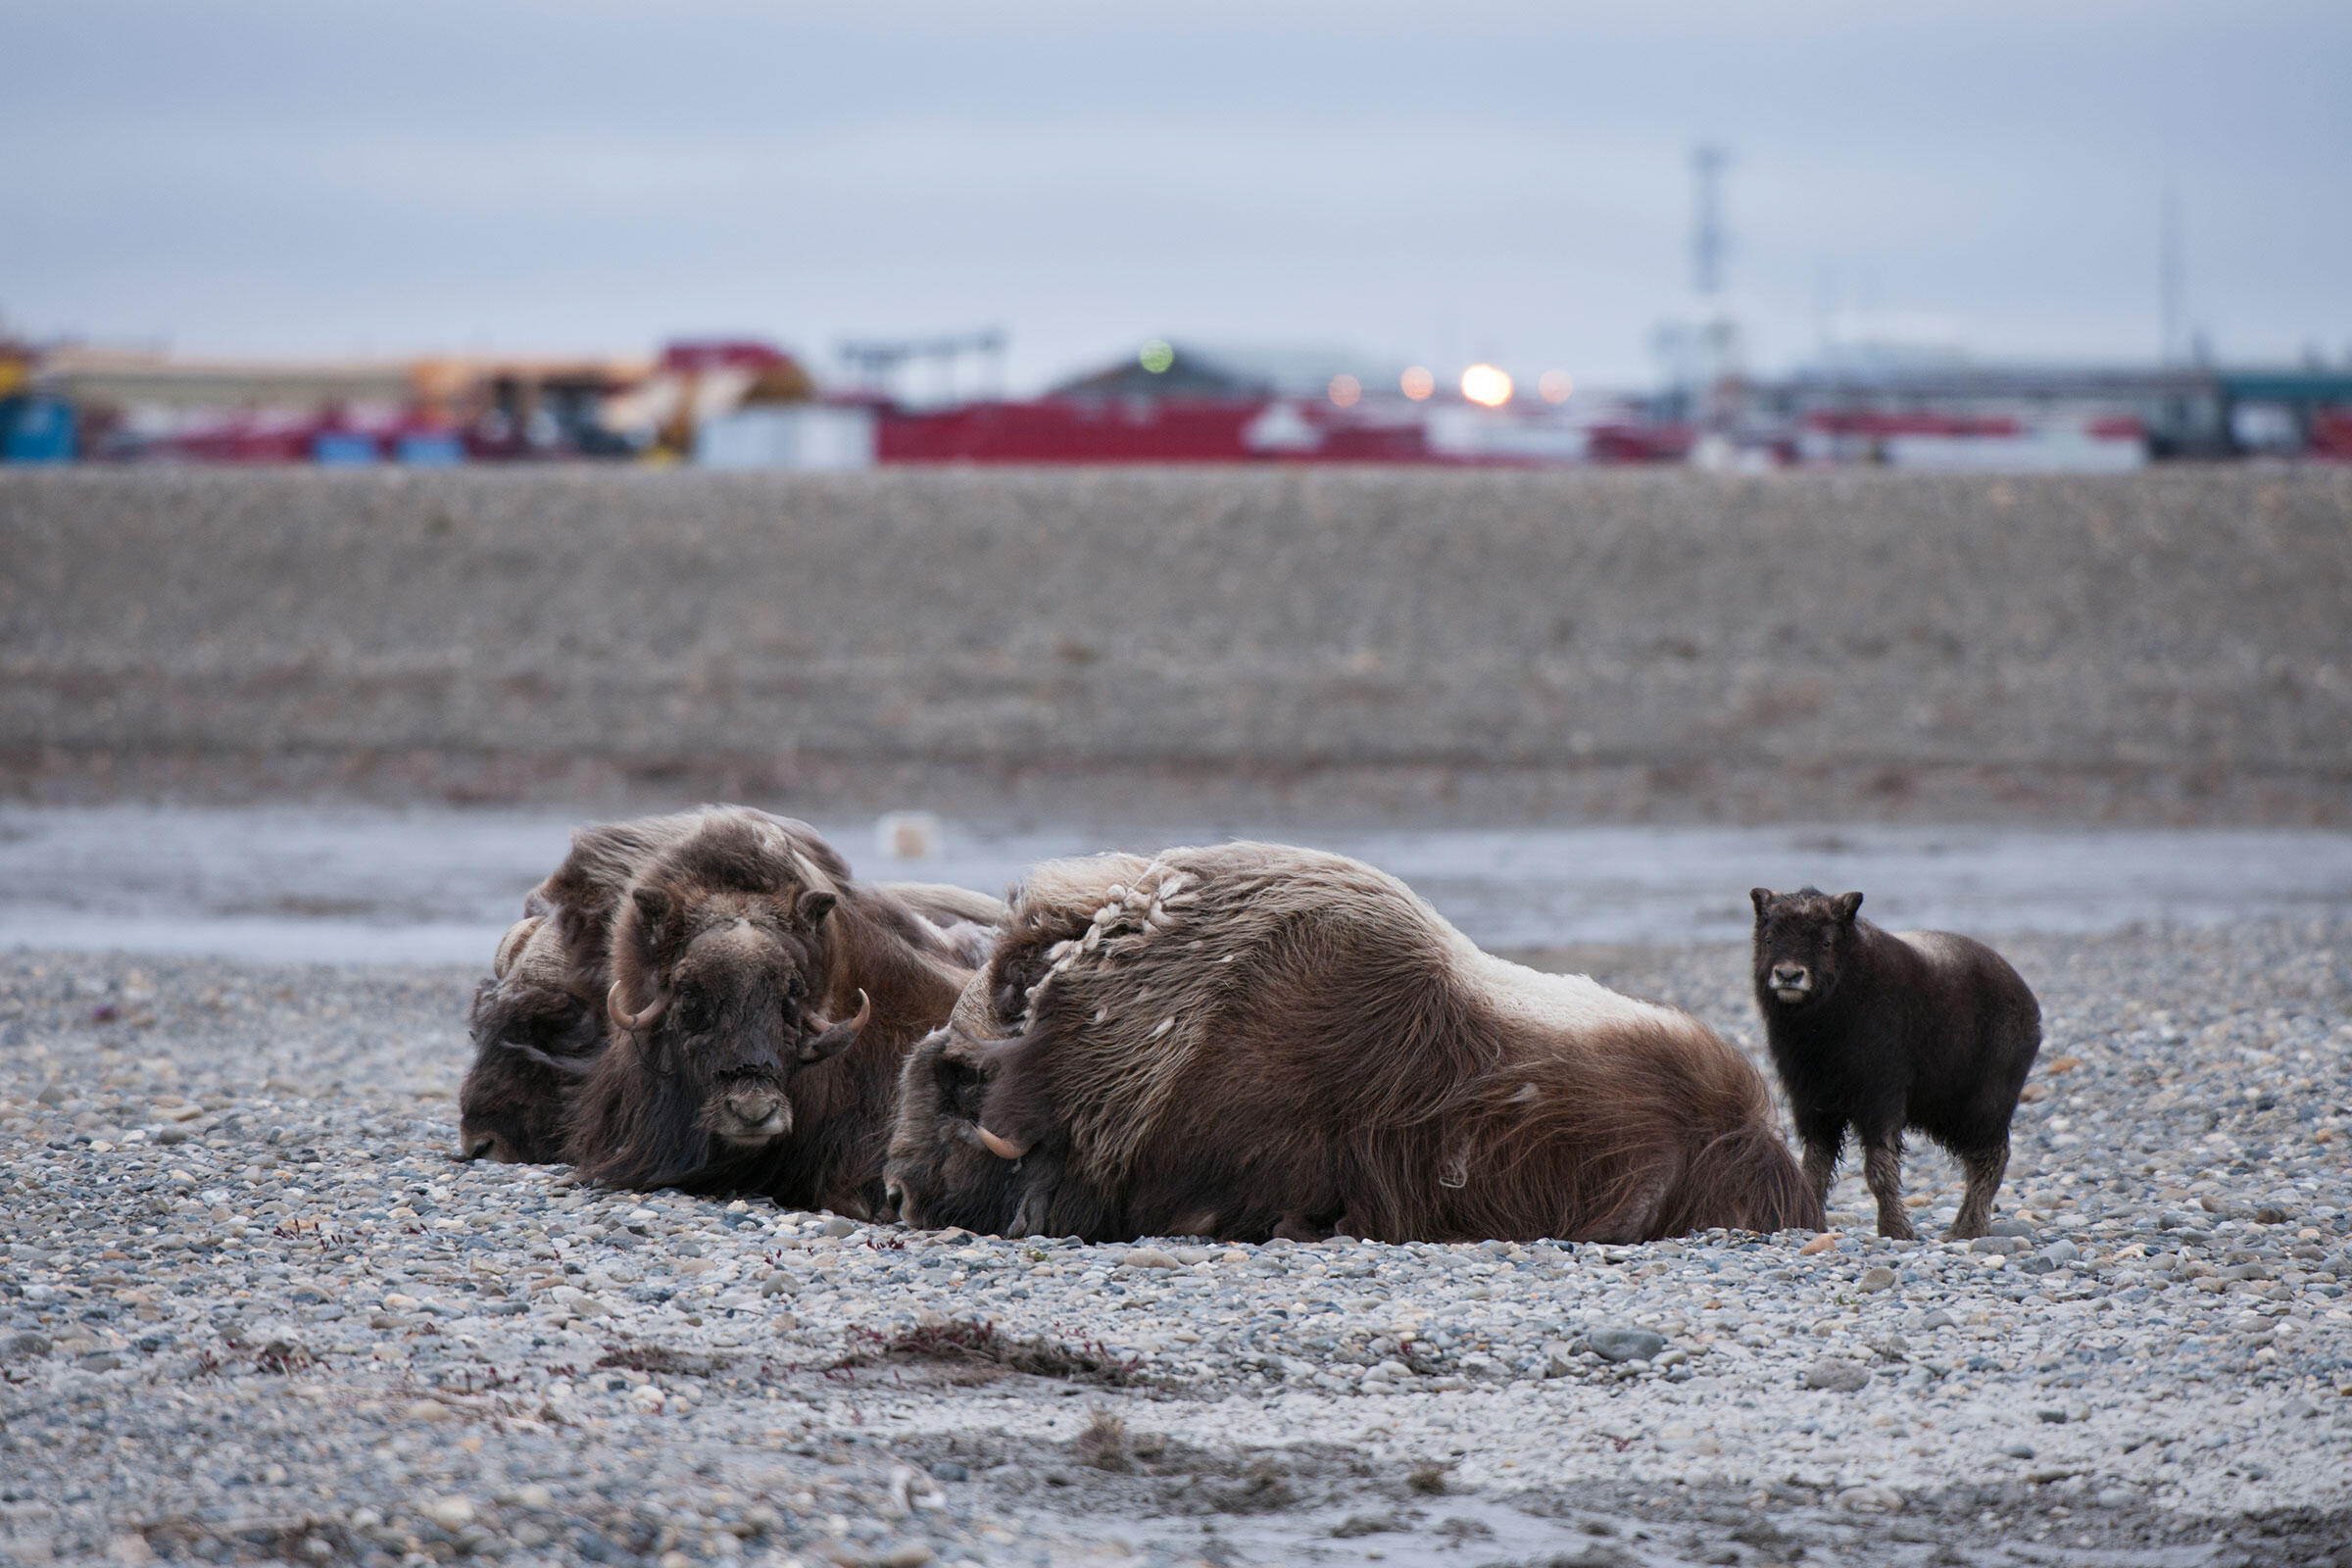 A group of musk oxen rest at the edge of the oil town of Deadhorse at Prudhoe Bay. Oilfields displace large mammals, and at the same time attract predators like arctic and red fox that impact bird populations. Florian Schulz